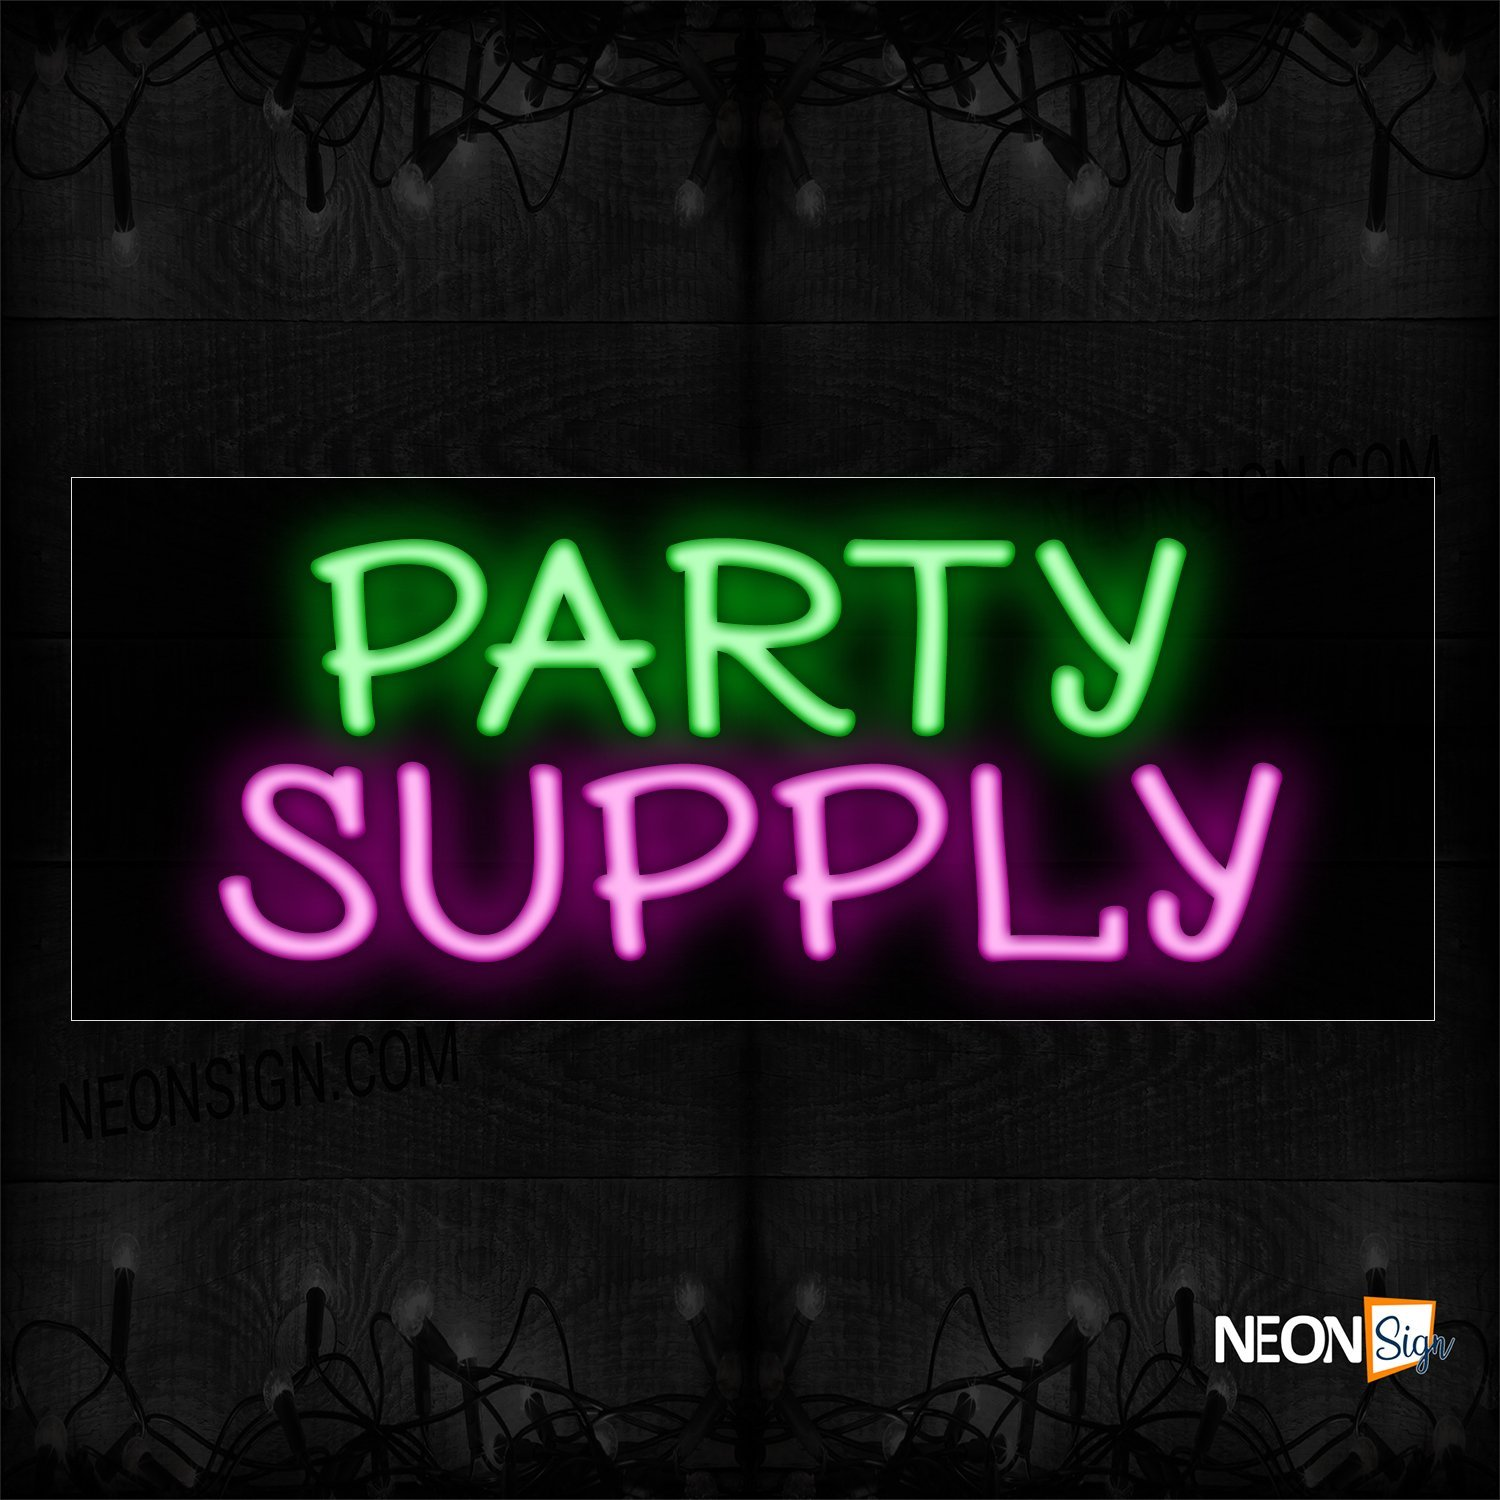 Image of 10274 Party Supply Neon Sign_13x32 Black Backing